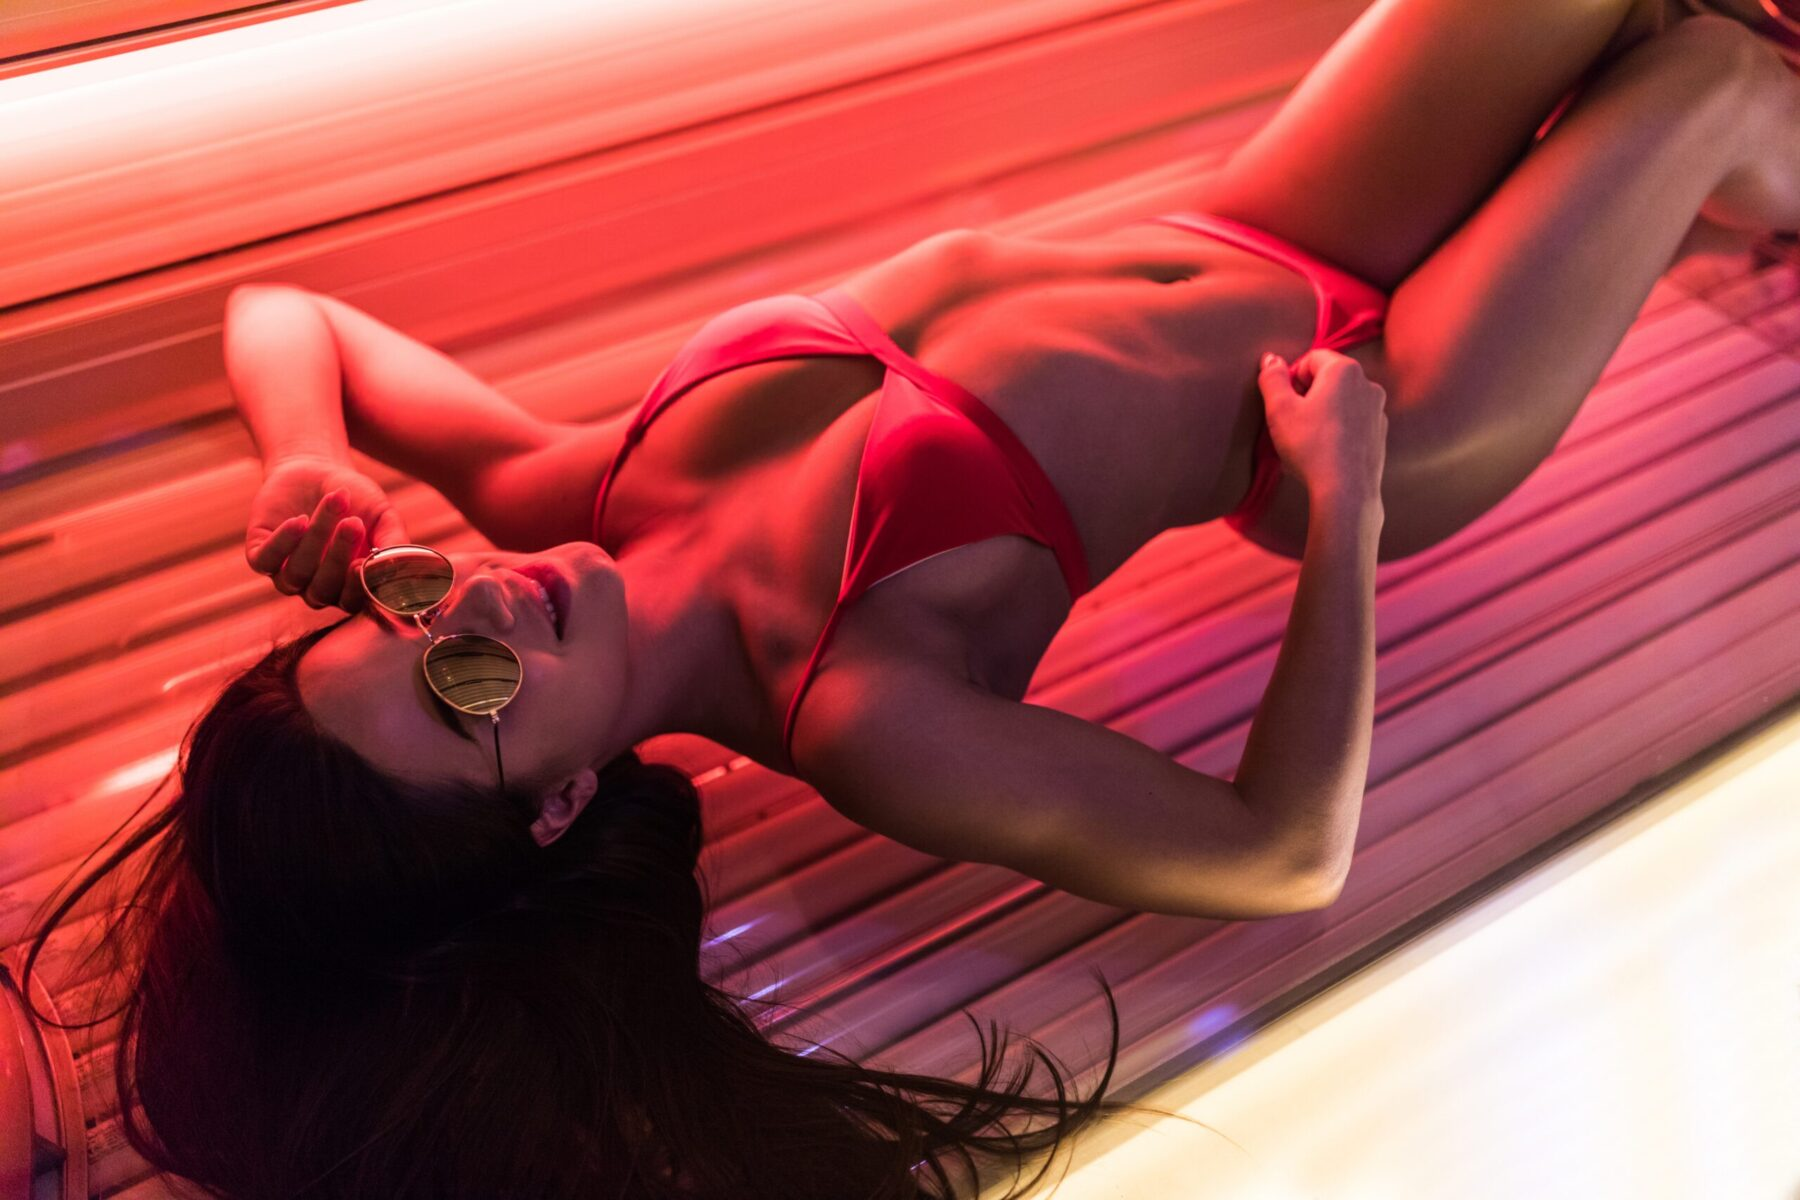 slim sexy girl in a swimsuit and sunglasses lies in a solarium and lying under the ultraviolet rays